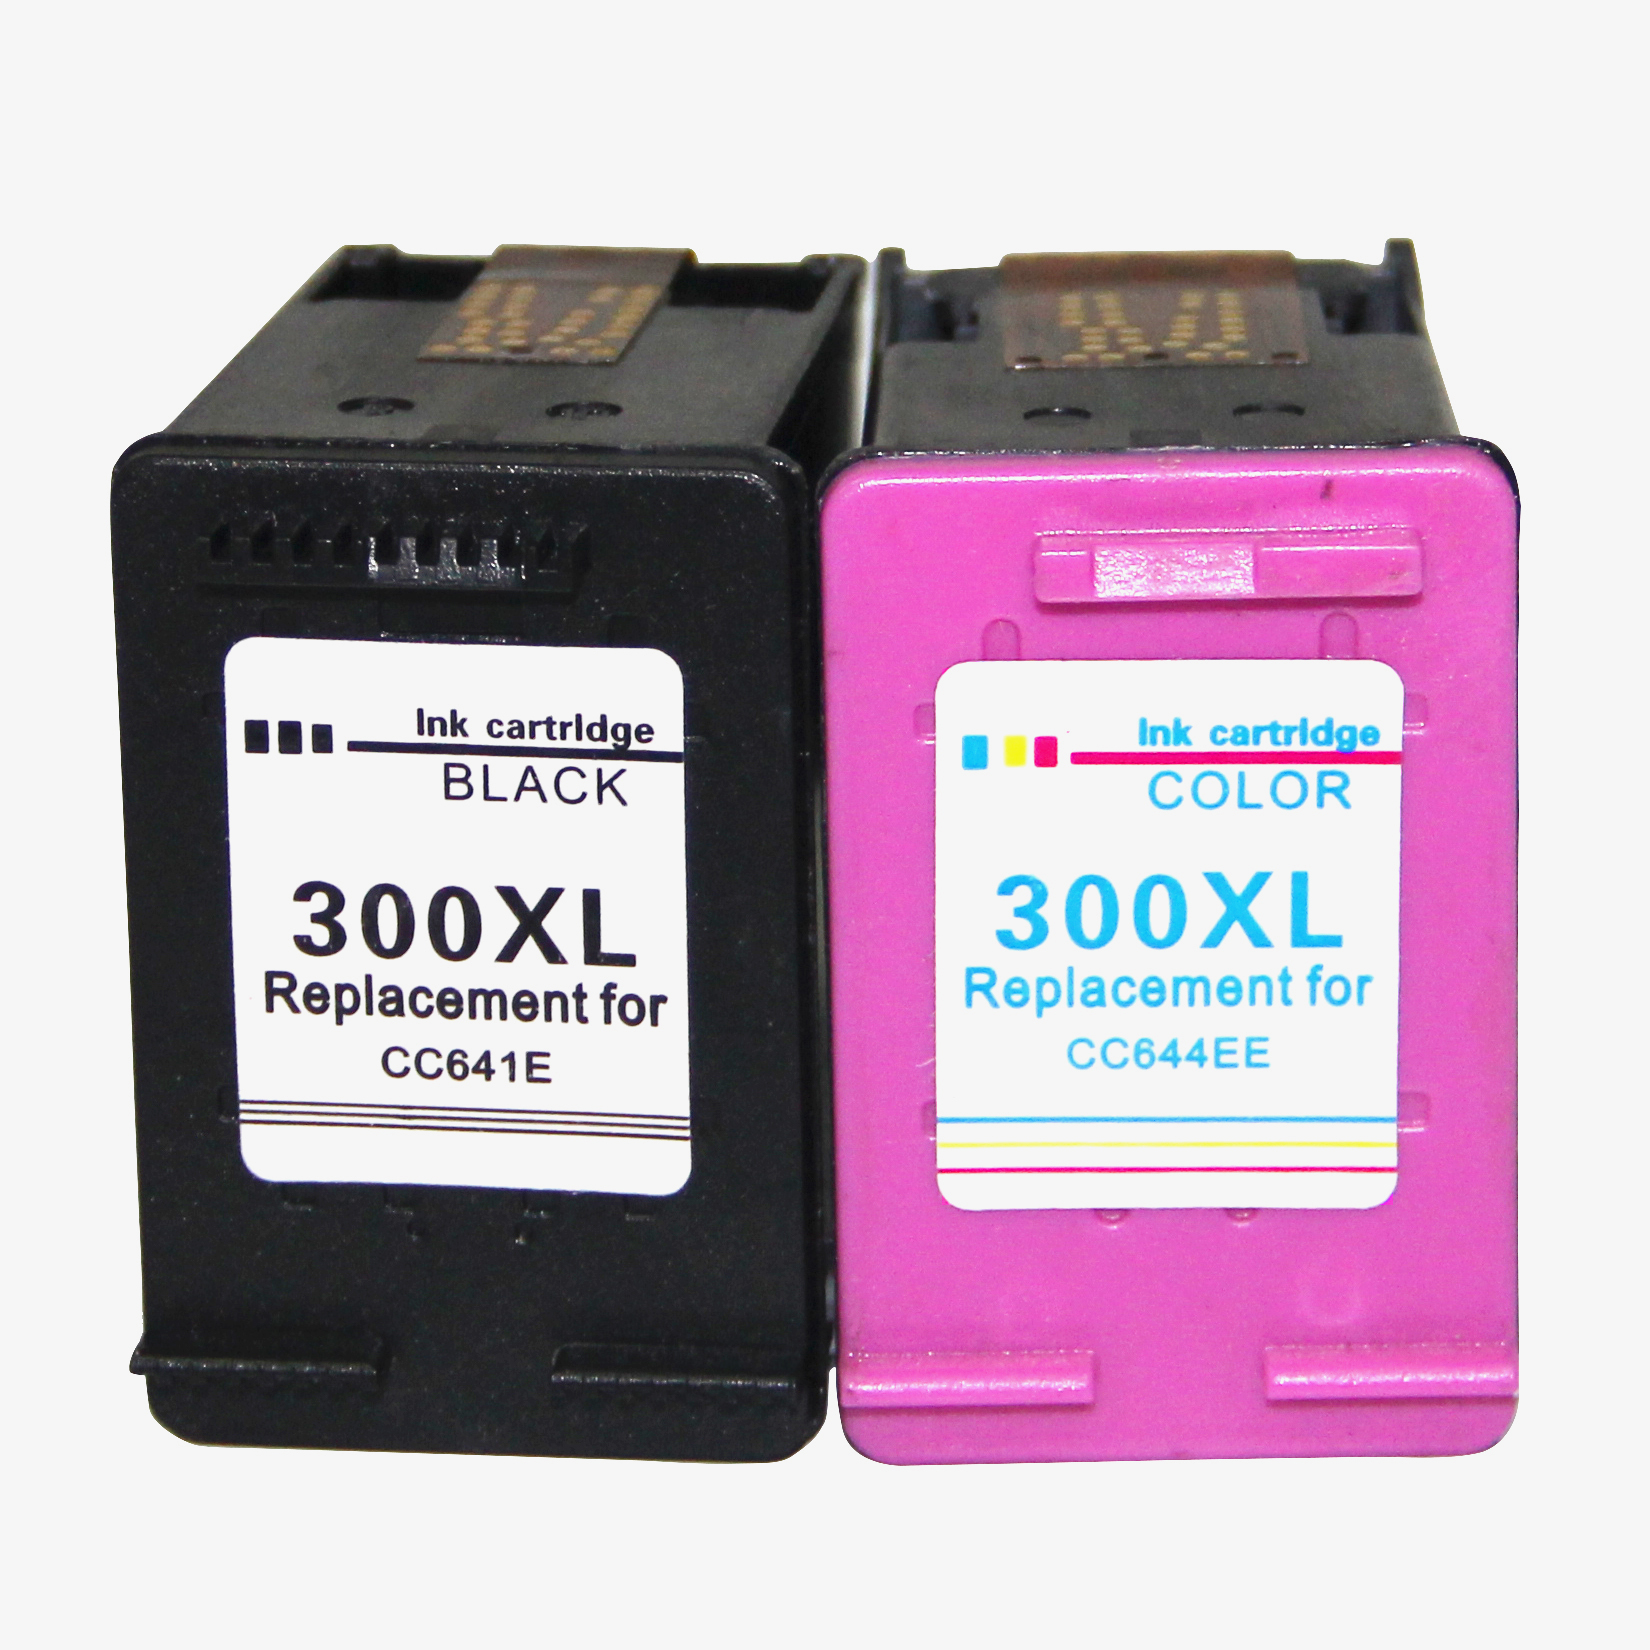 Replacement For HP 300 300XL Ink Cartridges For HP C4780 C4680 D1660 D1663 D2530 D2545 D2560 D2660 D5560 F2420 F4280 F4580